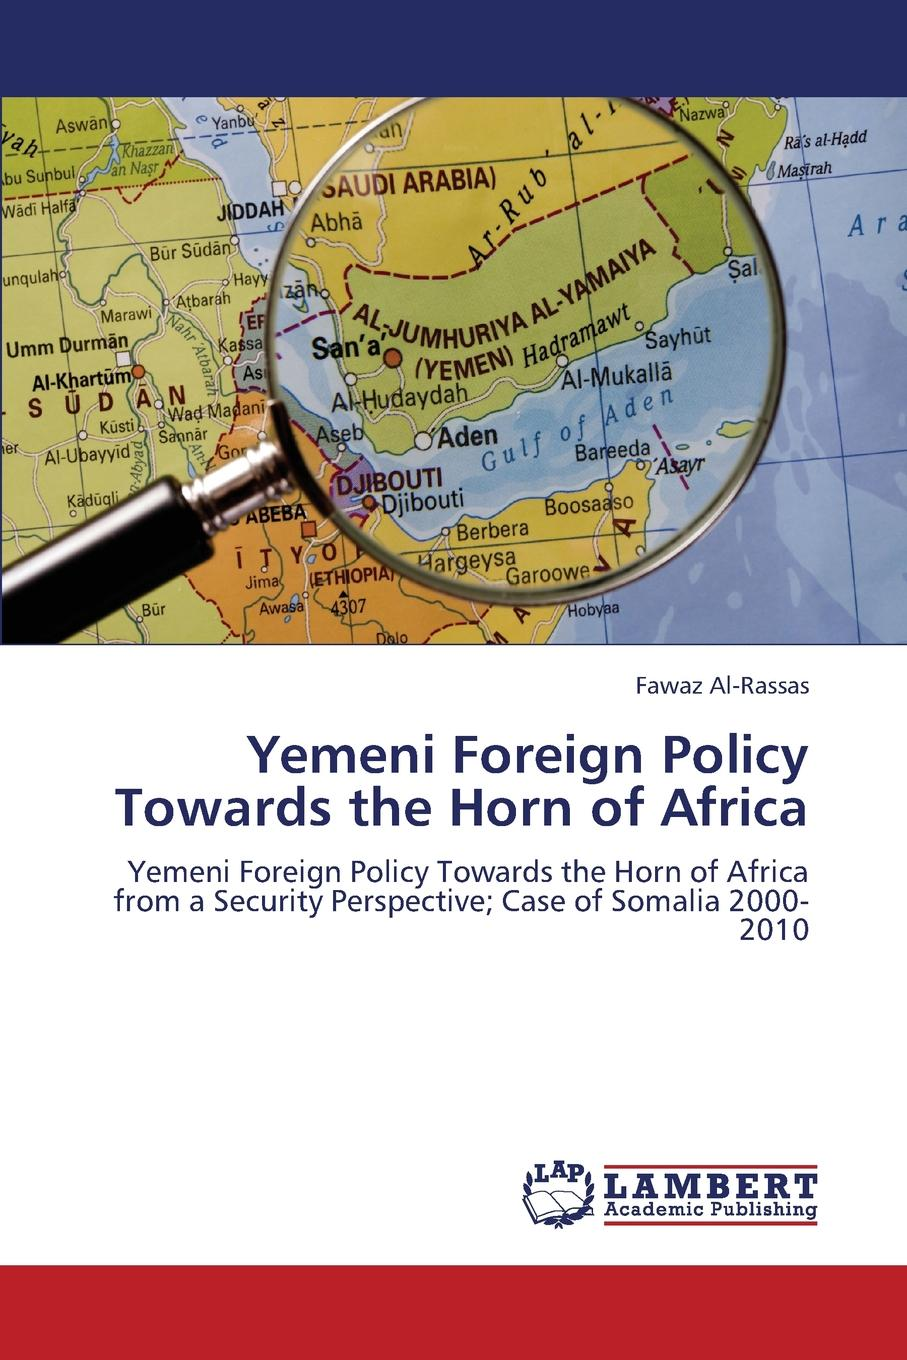 Al-Rassas Fawaz Yemeni Foreign Policy Towards the Horn of Africa